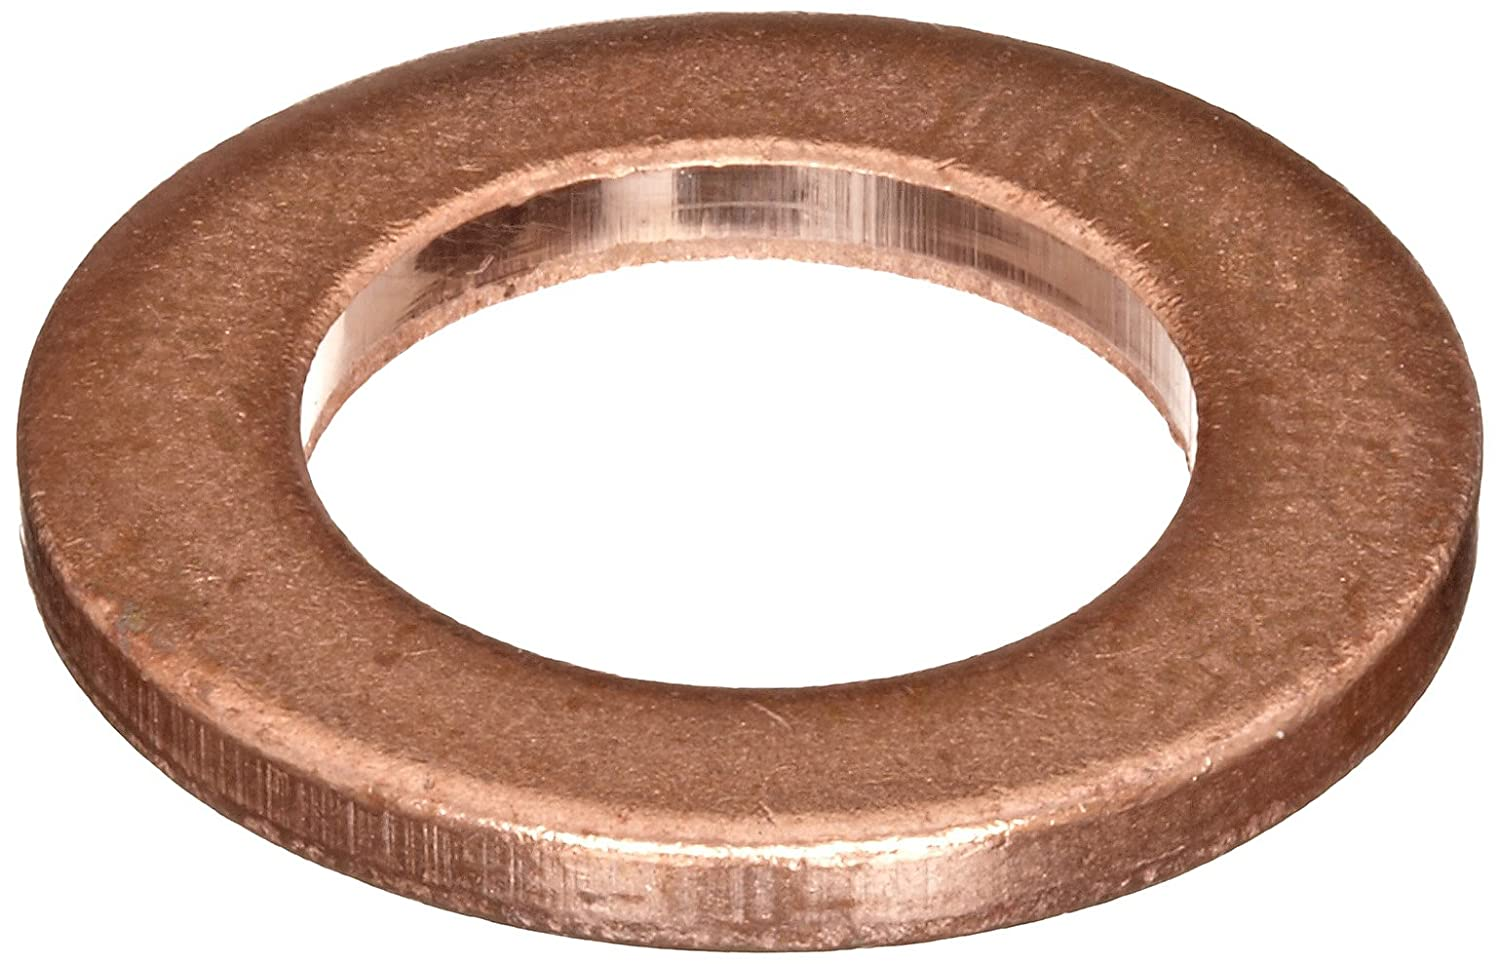 1 OD ASTM B152 Unpolished Mill 0.090 Thickness 110 Copper Round Shim H02//H04 Temper 5//8 ID Finish Pack of 10